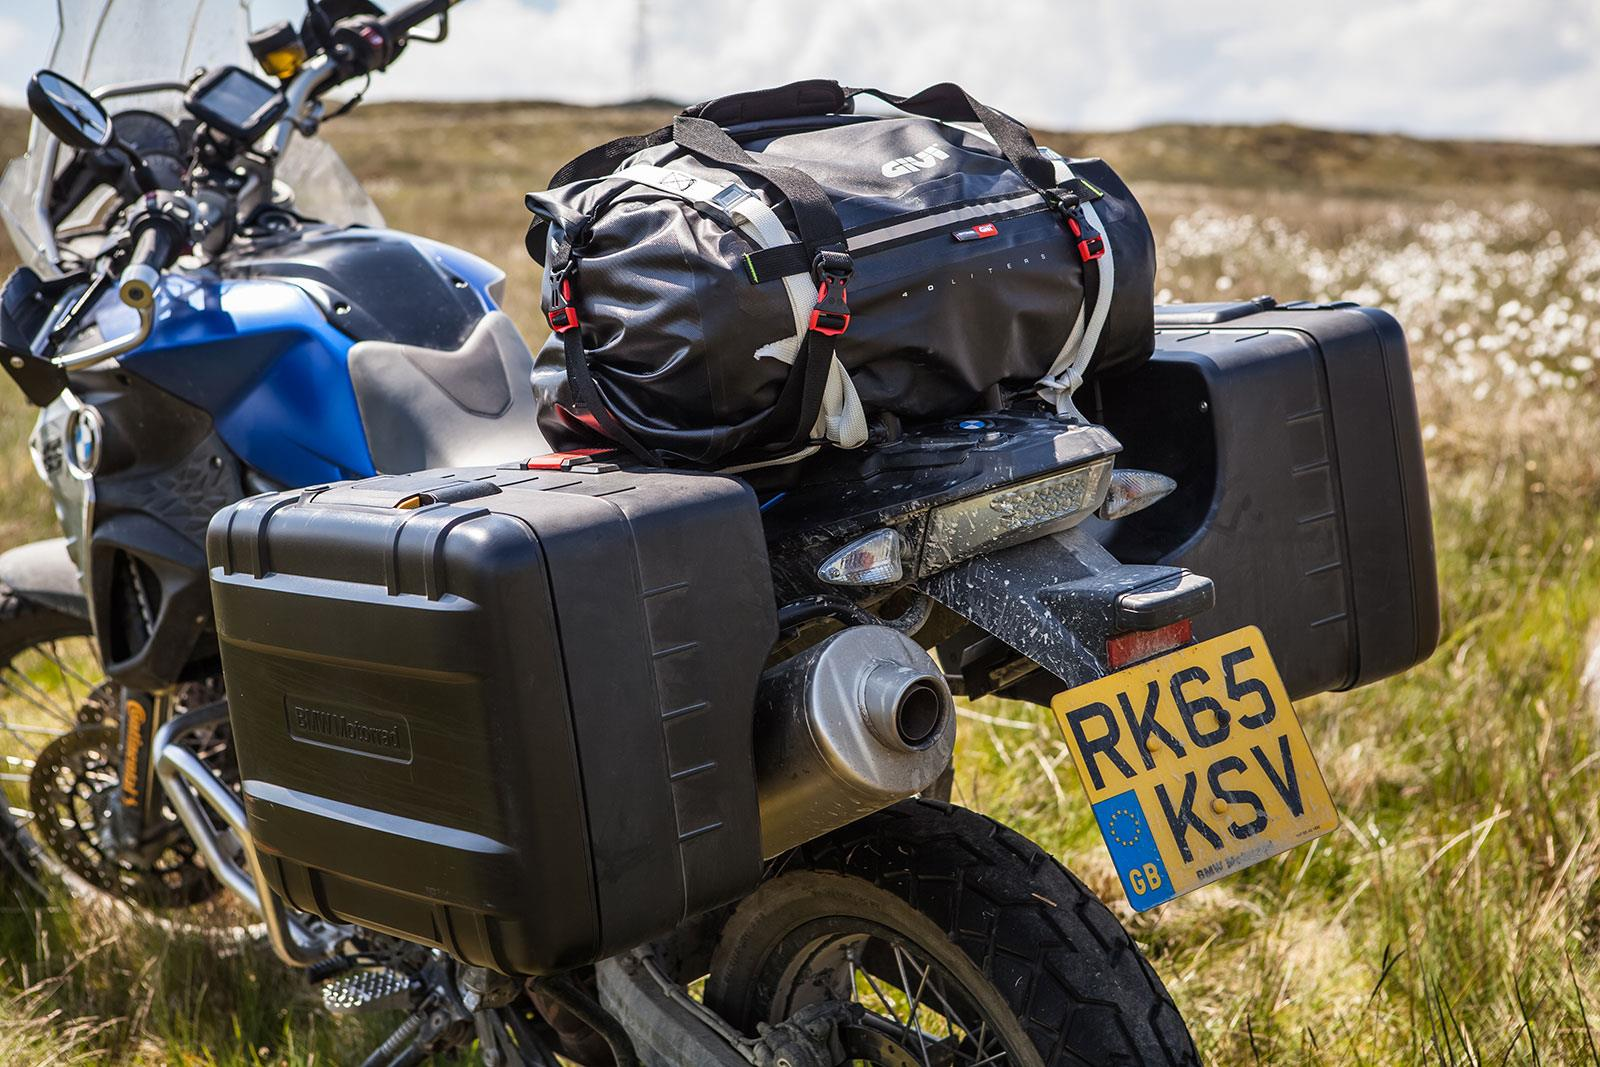 BMW F800GS loaded up with luggage